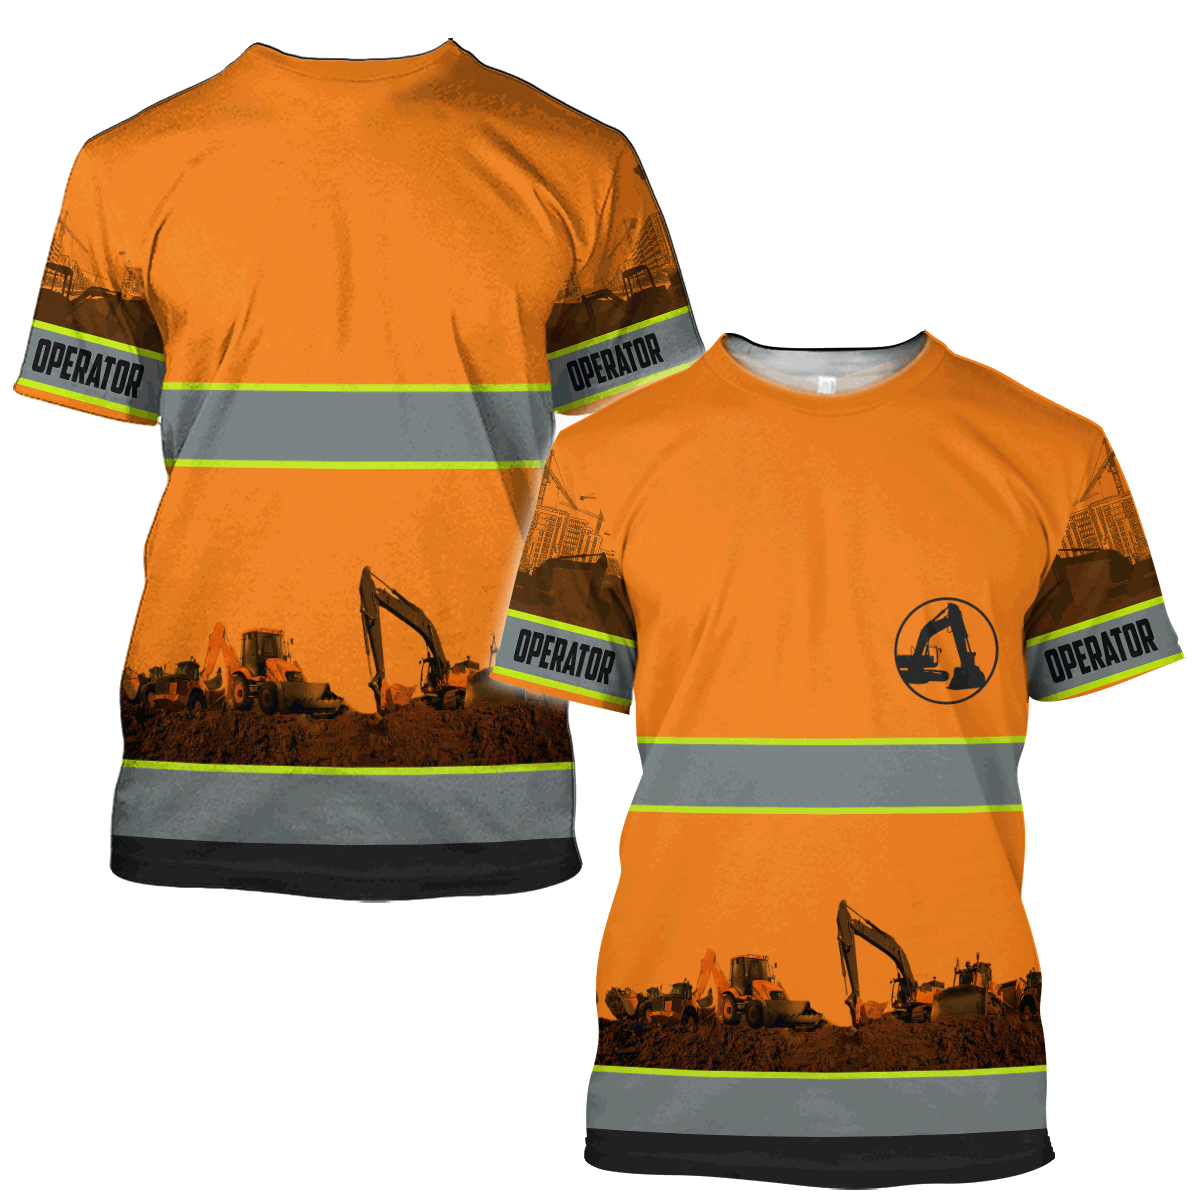 Operator 3D All Over Printed Unisex Shirts For Men And Women - T-Shirts / XXL